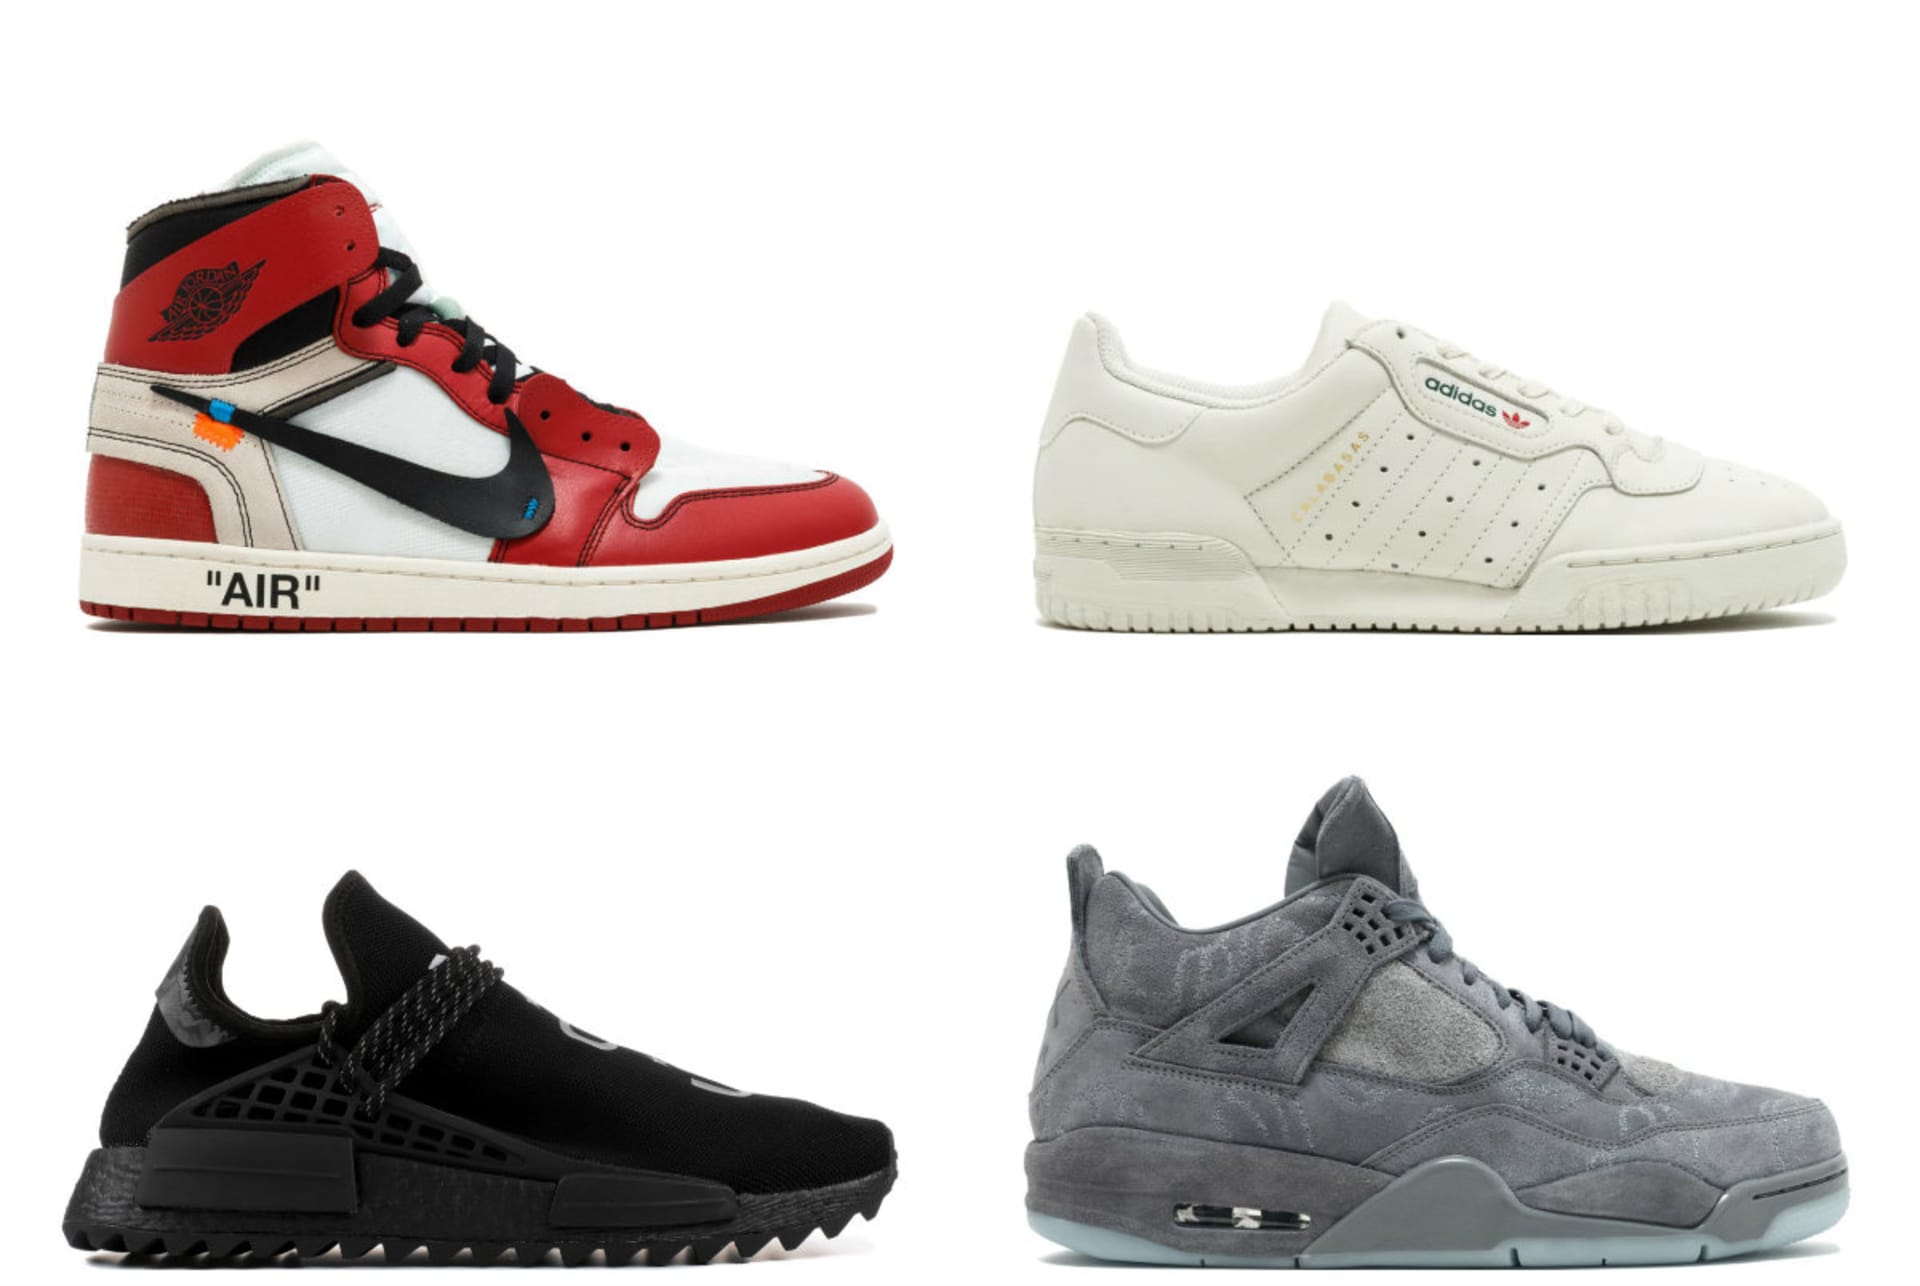 Best Of 2017Complex Sneakers Sneakers 2017Complex Best Best The Of The The VqSUpGzM